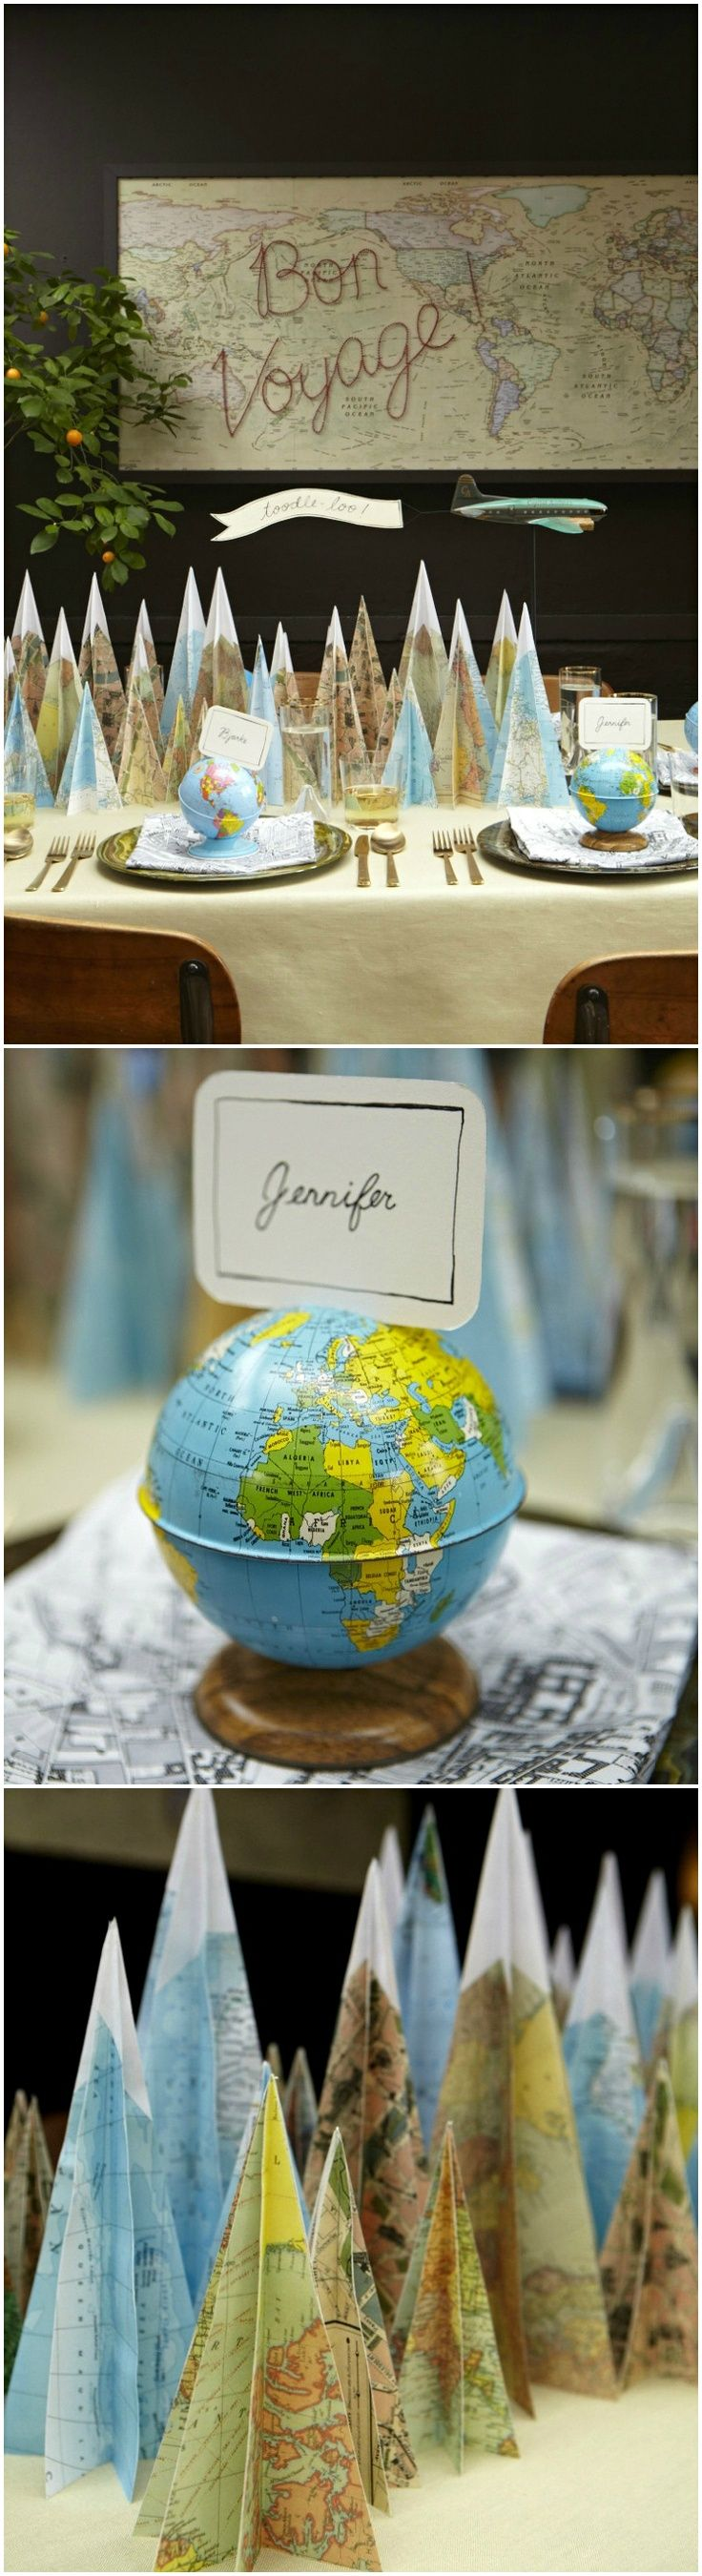 I wonder if we could get this look on a larger scale with globe ball from oriental trading and an upside down paper plate. Theme on tag above.